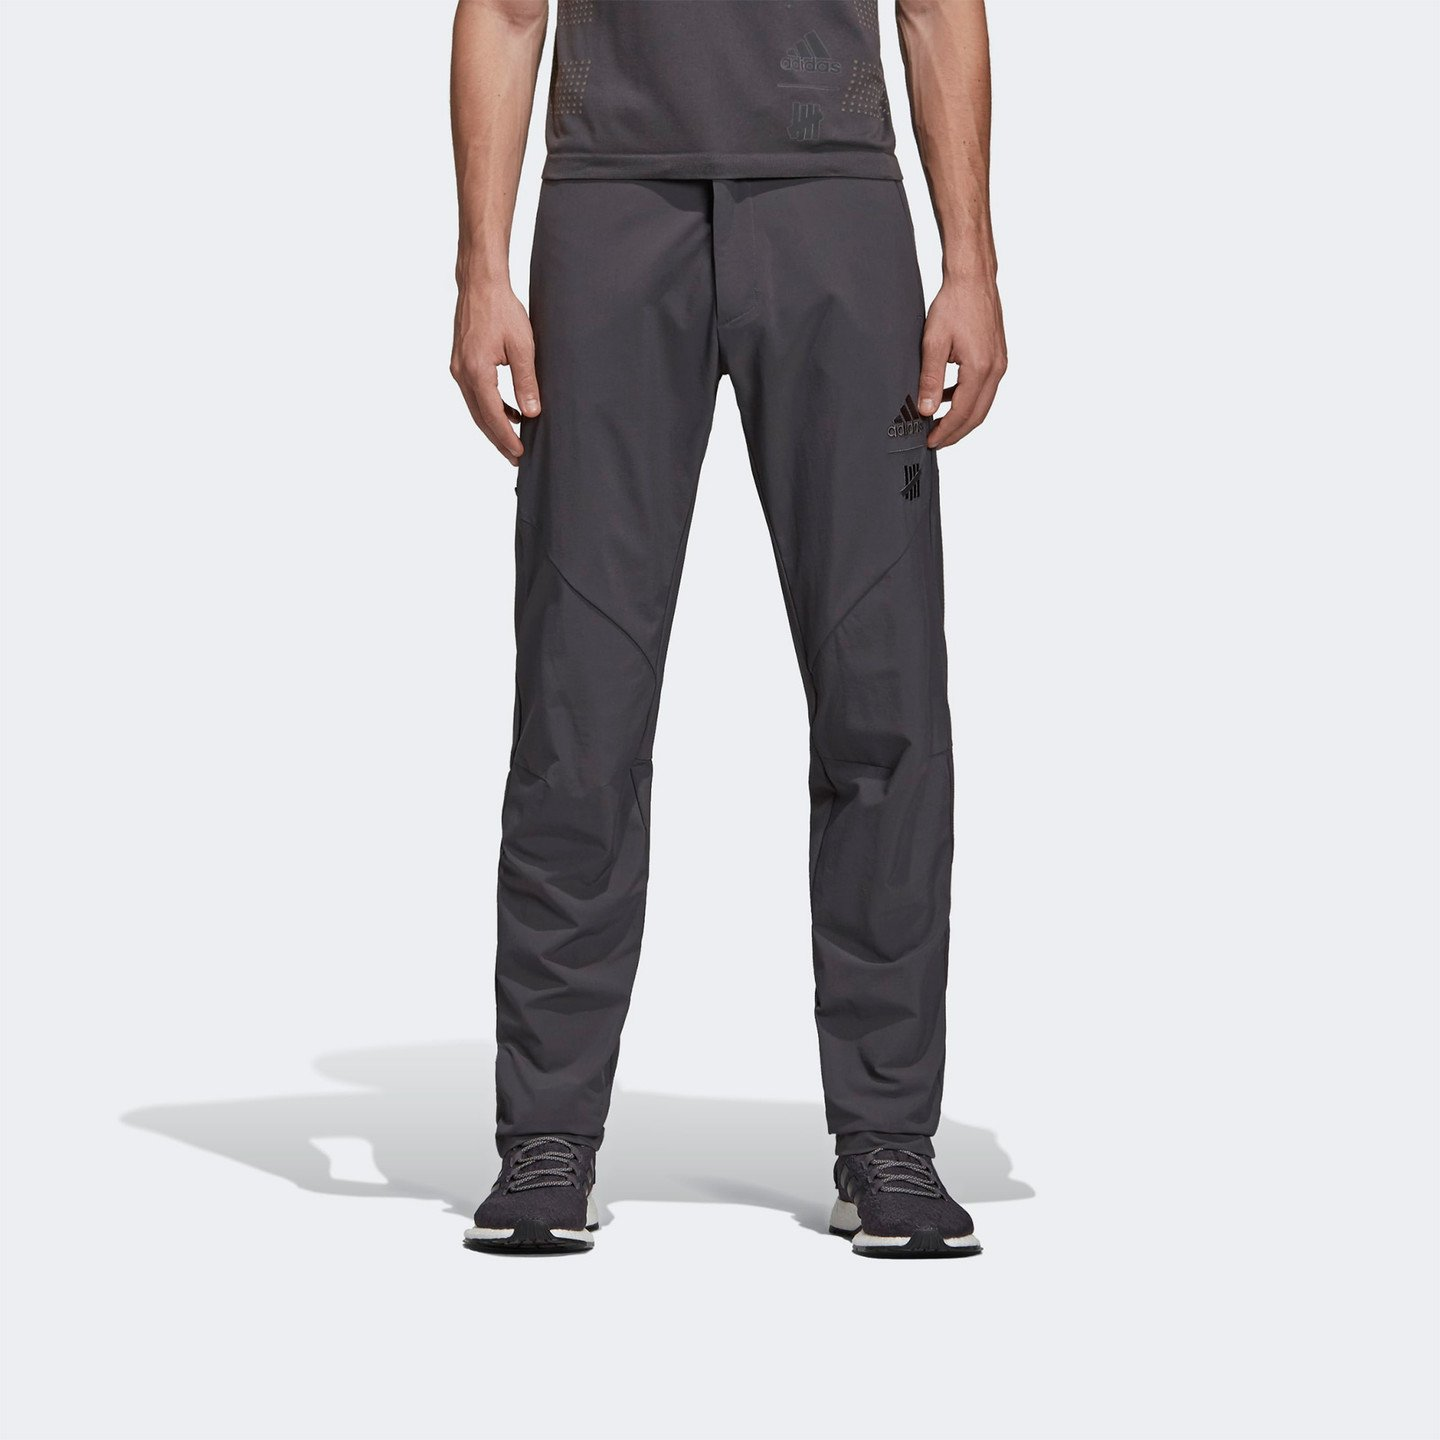 Adidas Outerwear Pants 'UNDFTD' Utility Black DN8788